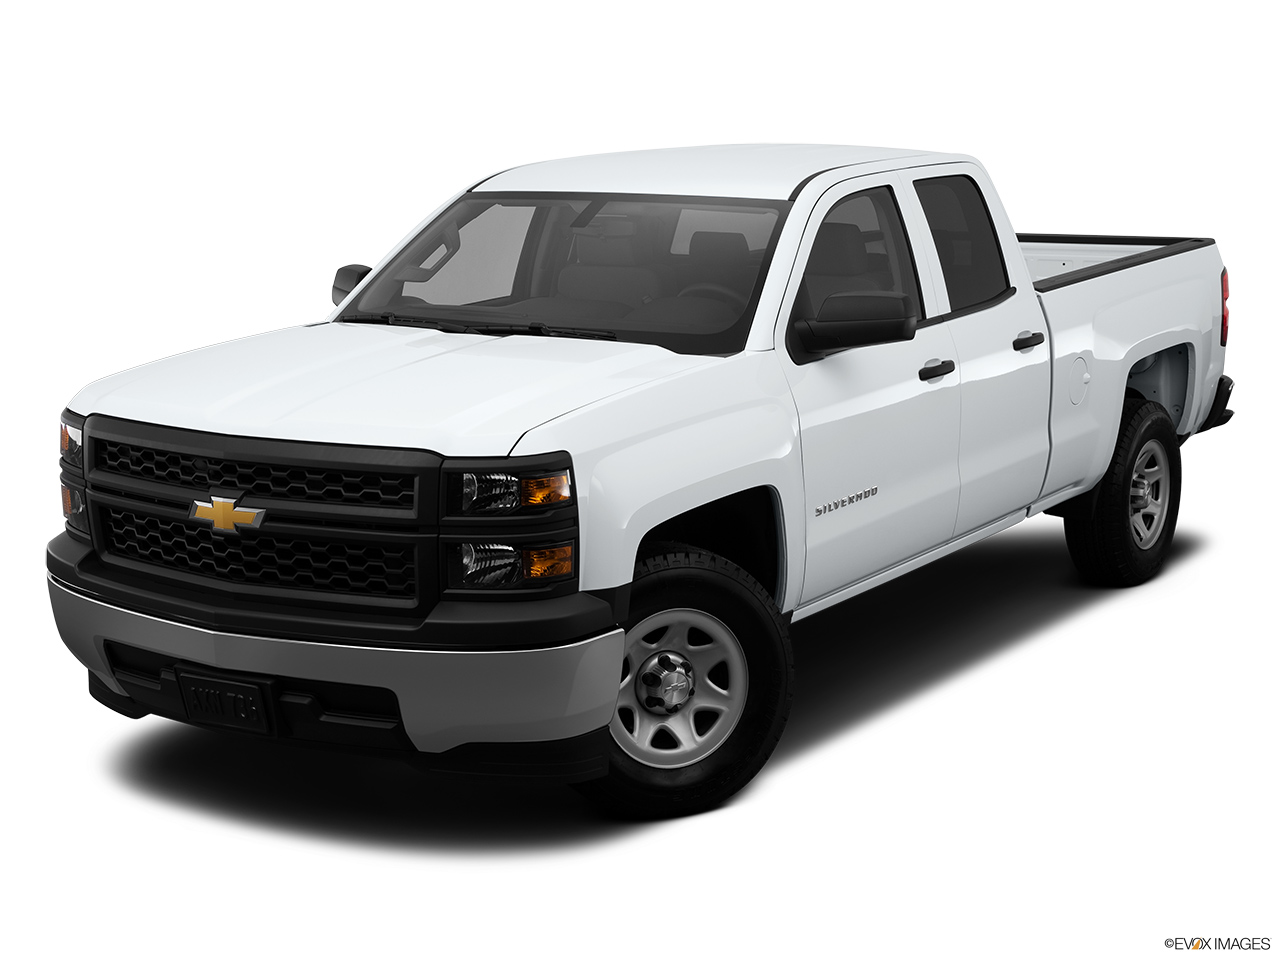 2014 chevrolet silverado 1500 2wd double cab 143 5 work truck w 1wt. Black Bedroom Furniture Sets. Home Design Ideas